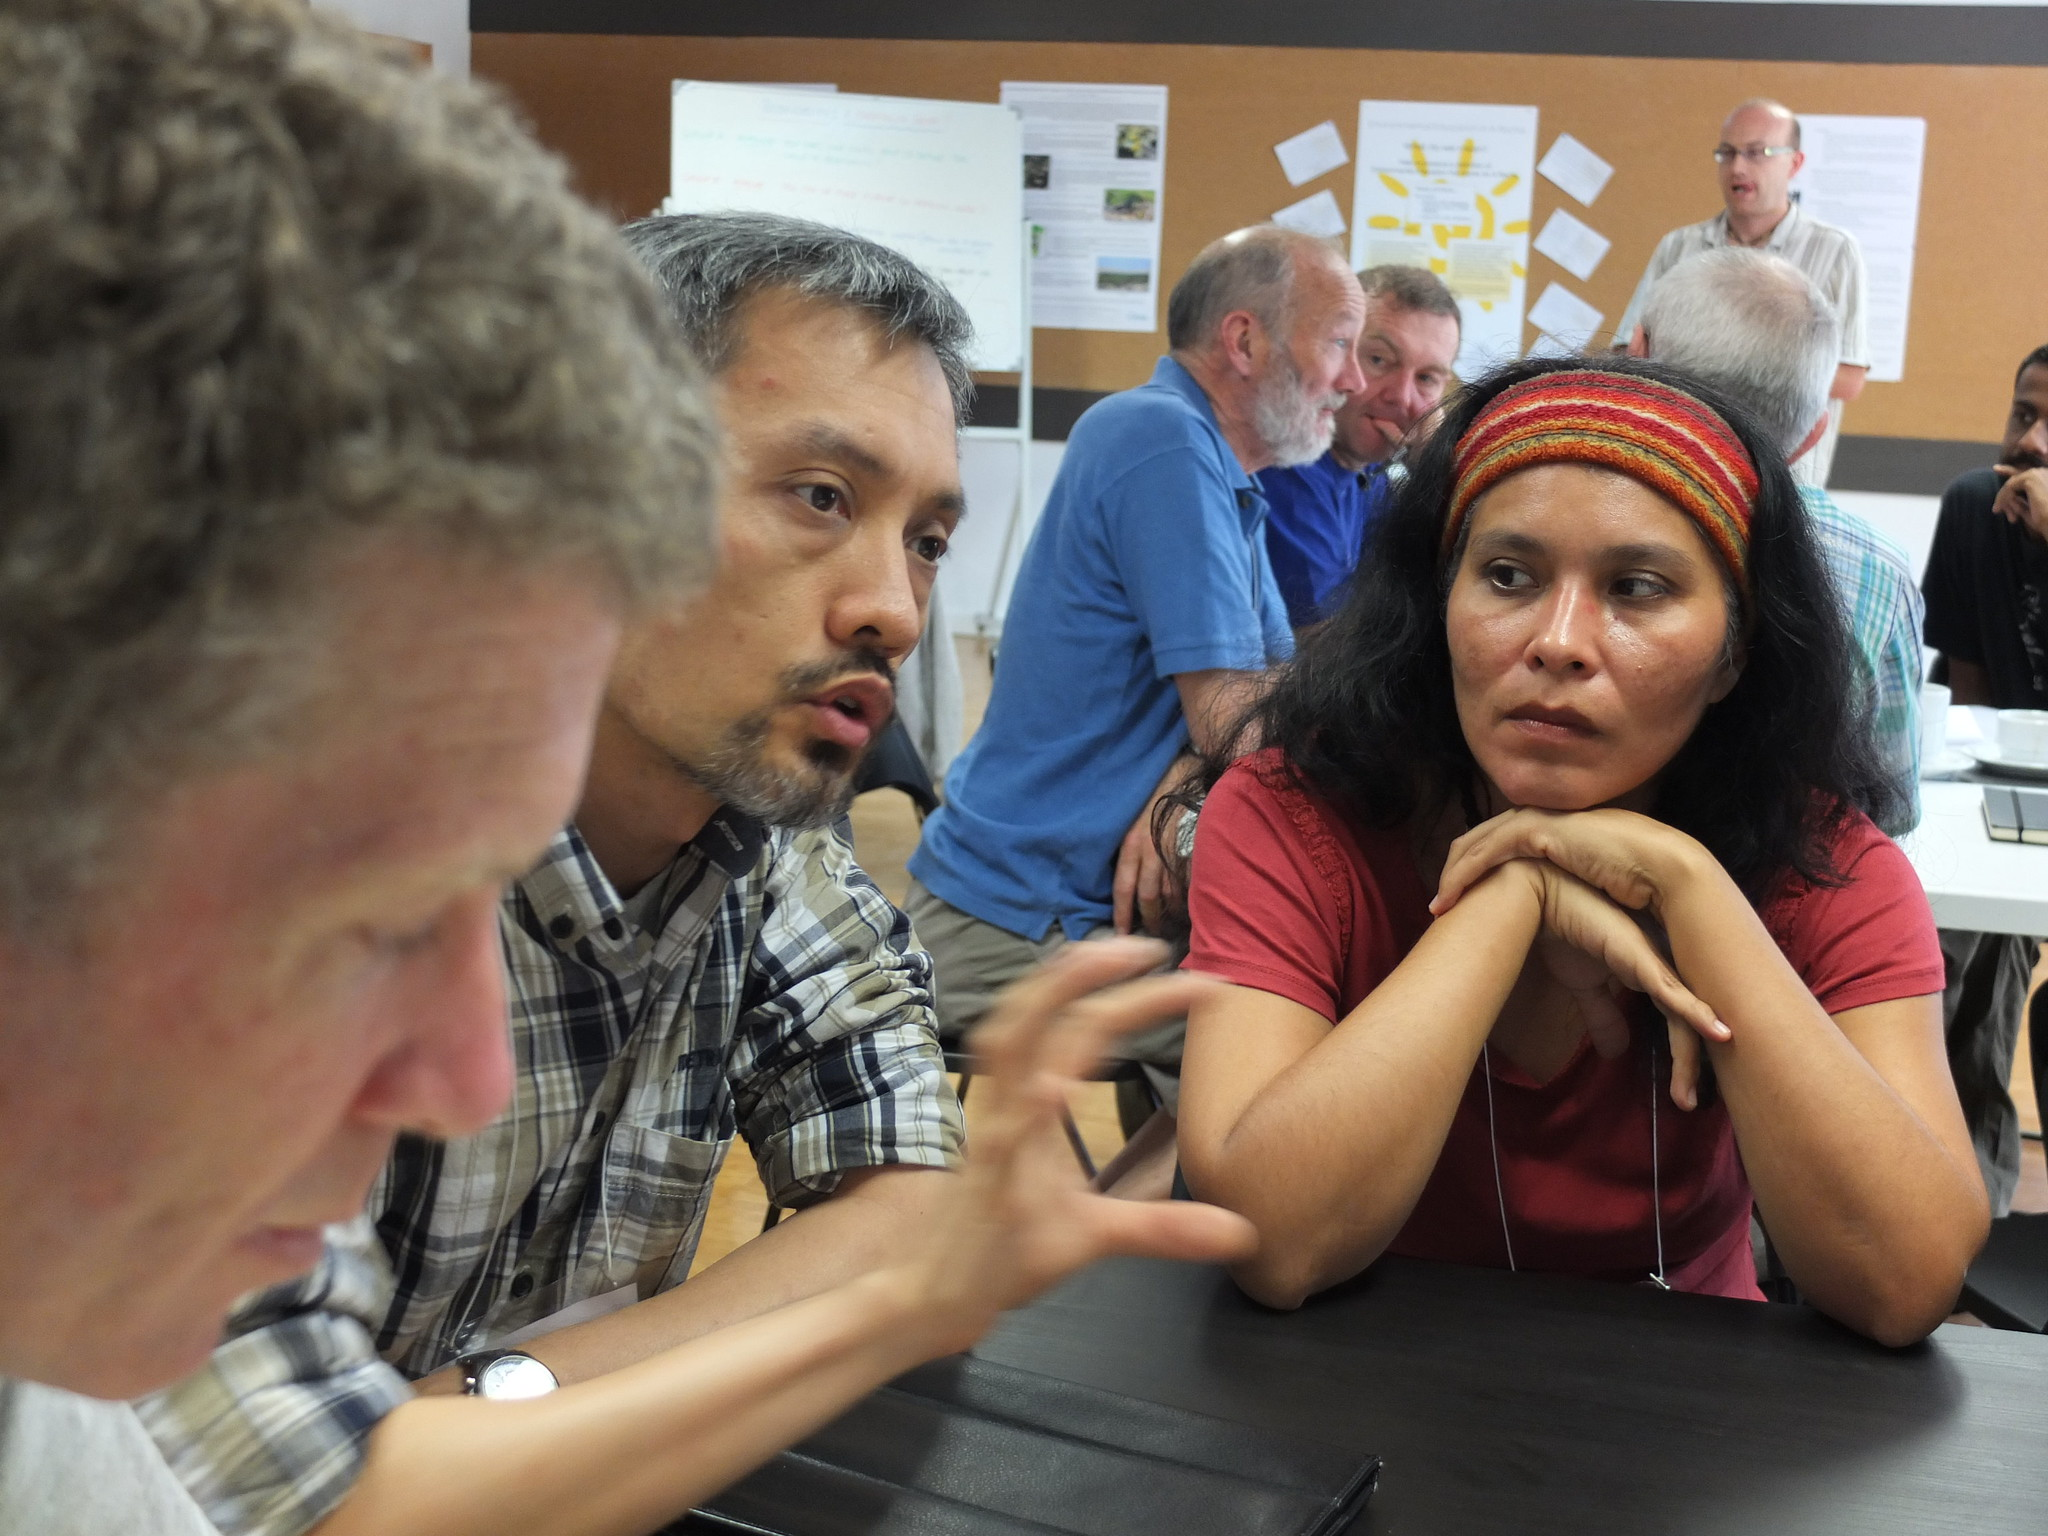 A woman in a red headband and shirt holds her hands under her chin while leaning forward on a table. She is listening to a man with graying hair and a plaid shirt as he gestures with his hand mid-sentence.